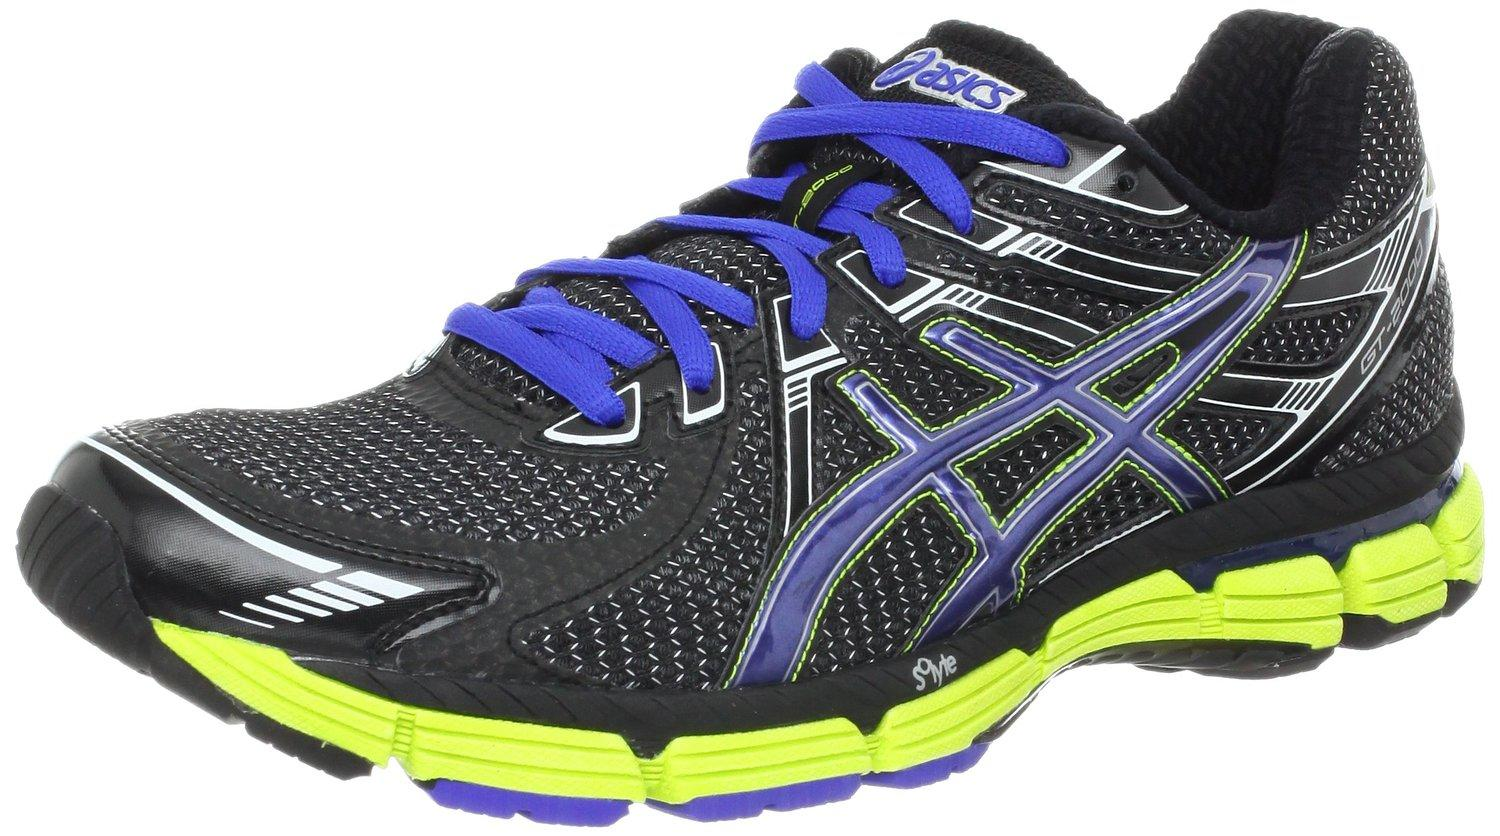 Asics Gt 2000 Reviewed To Or Not In Oct 2018 Womens Gel Fujitrabuco 6 Trail Running Shoe